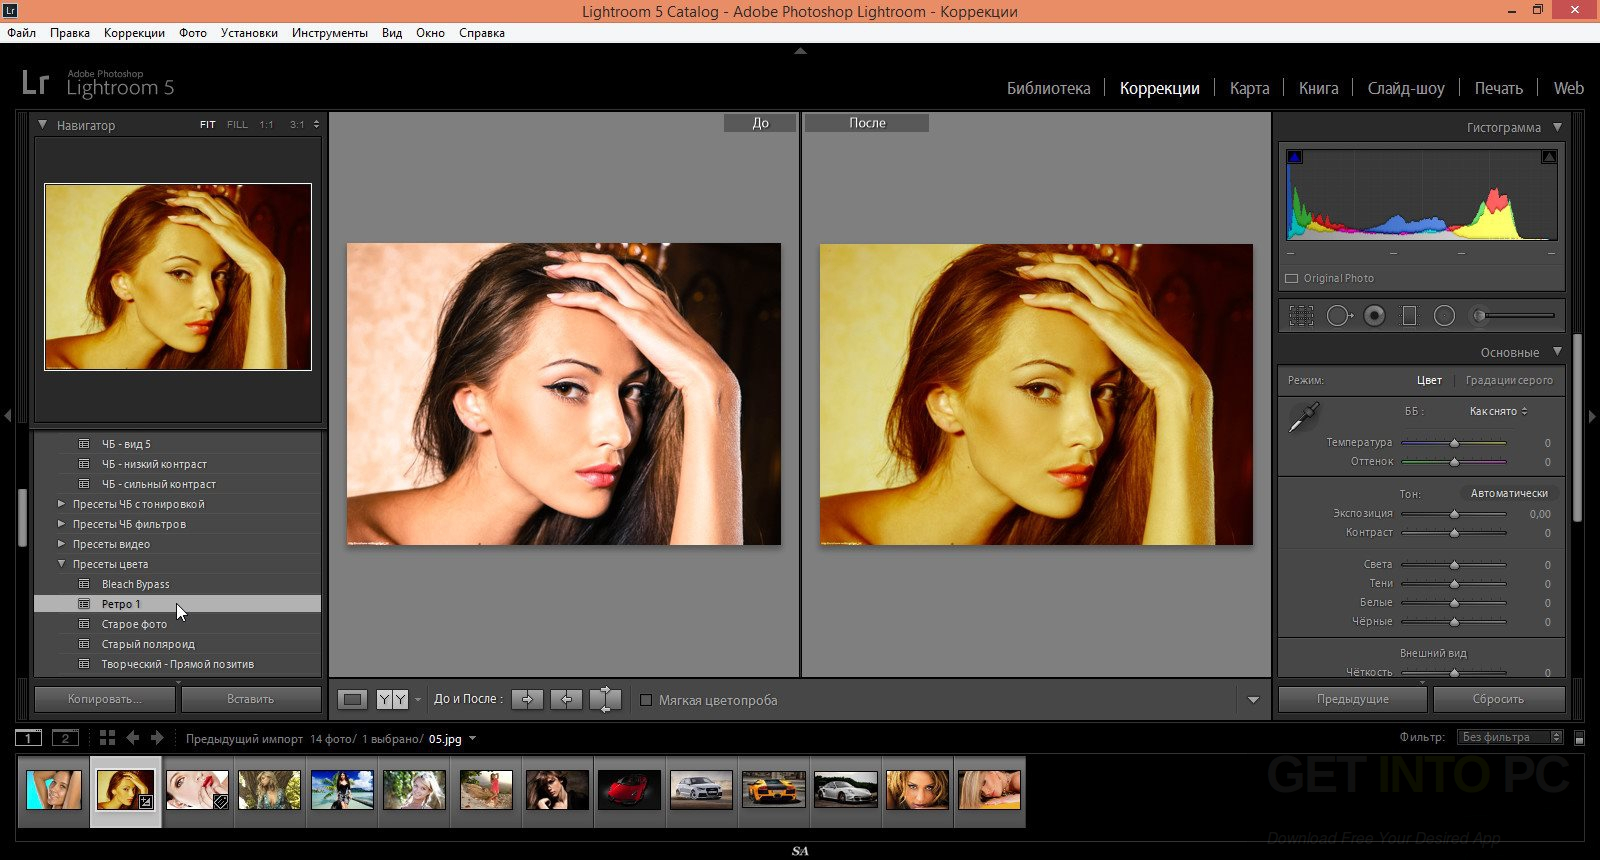 Adobe Photoshop Lightroom 3 Free